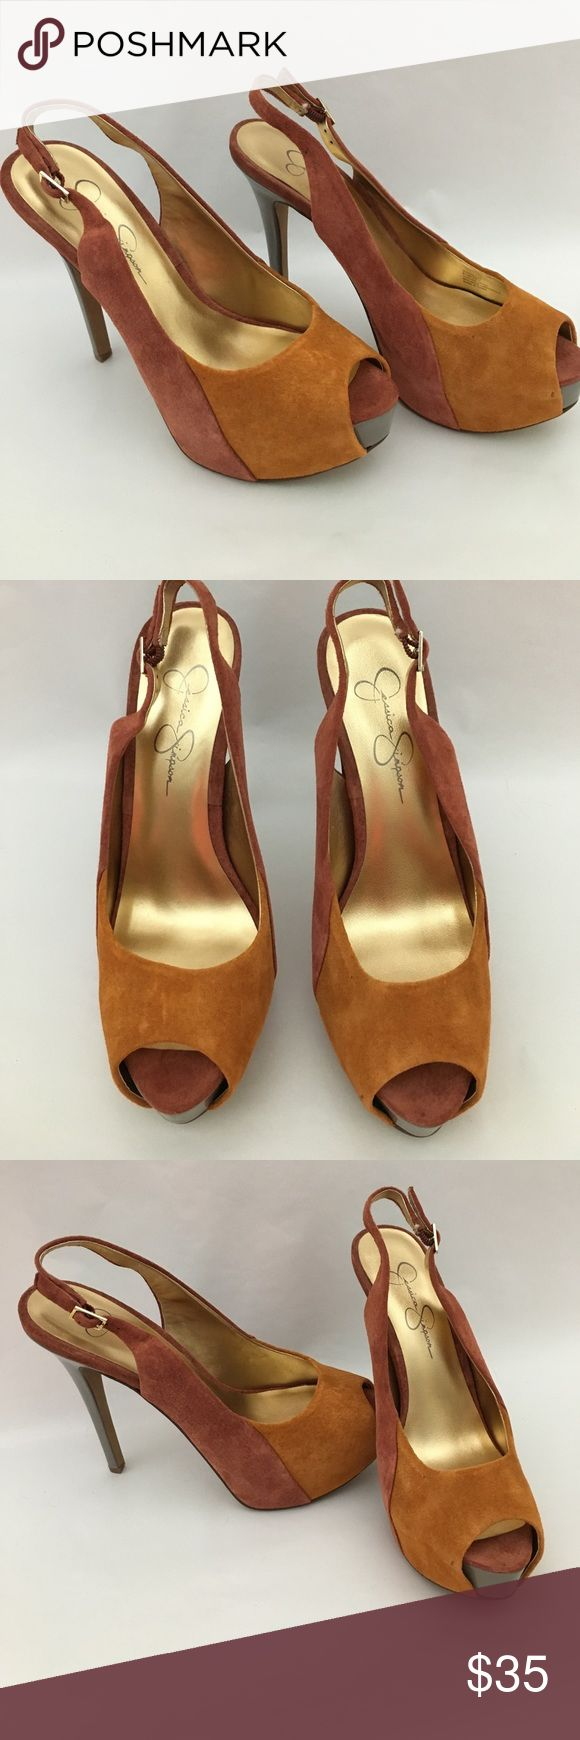 "Jessica Simpson Suede Shoes Two tone 5"" heels, 1 2/2 platform, has an unnoticeable spot in picture. New w/o tags Jessica Simpson Shoes Heels"